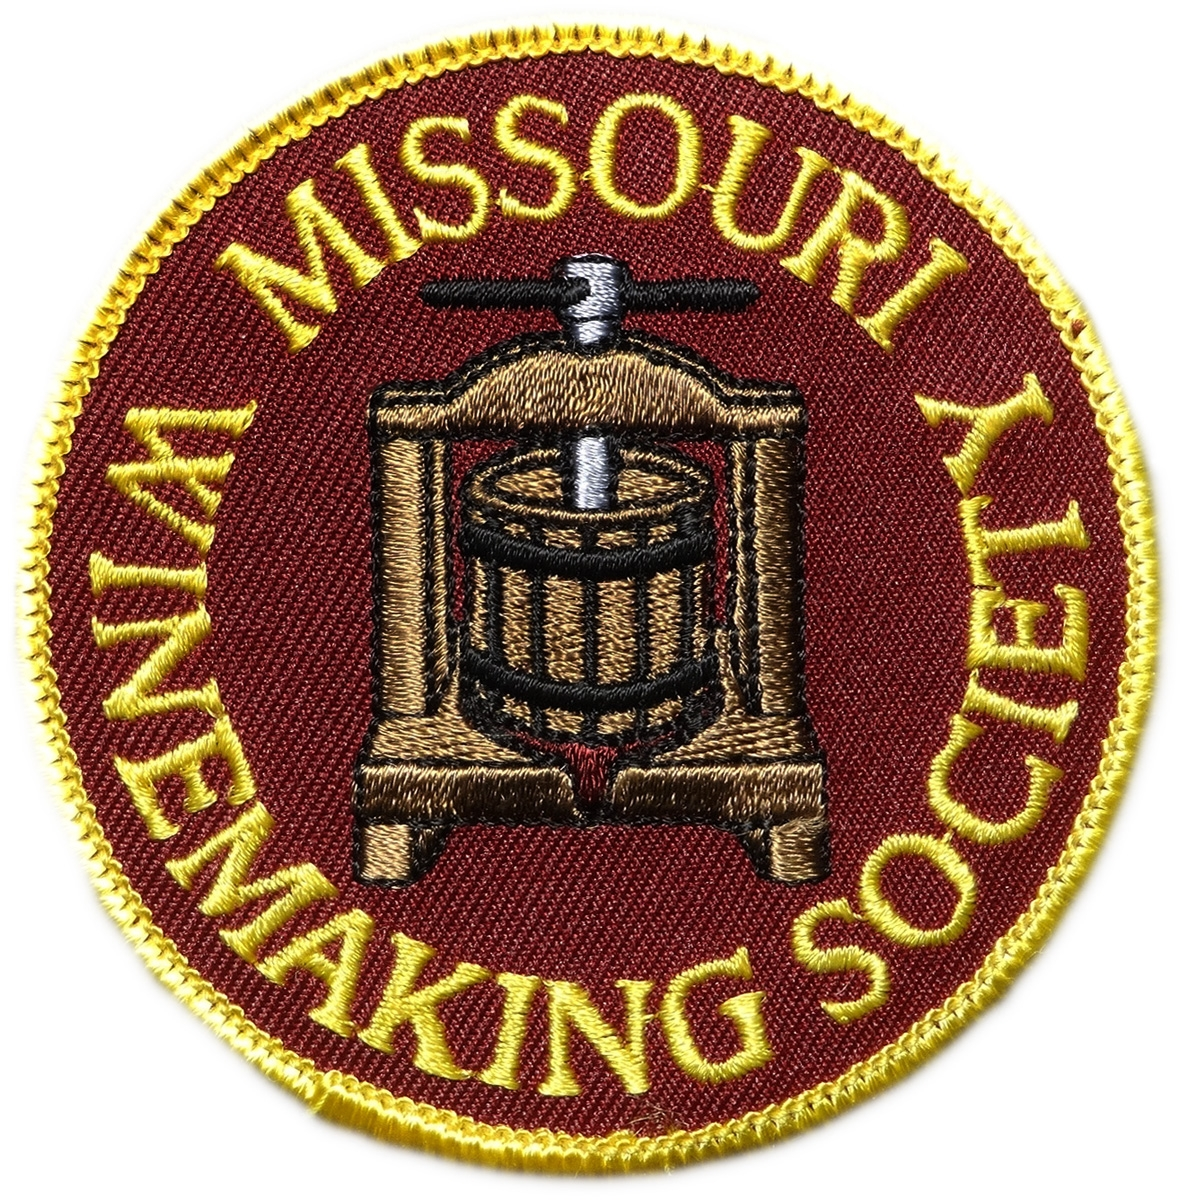 Missouri Winemaking Society